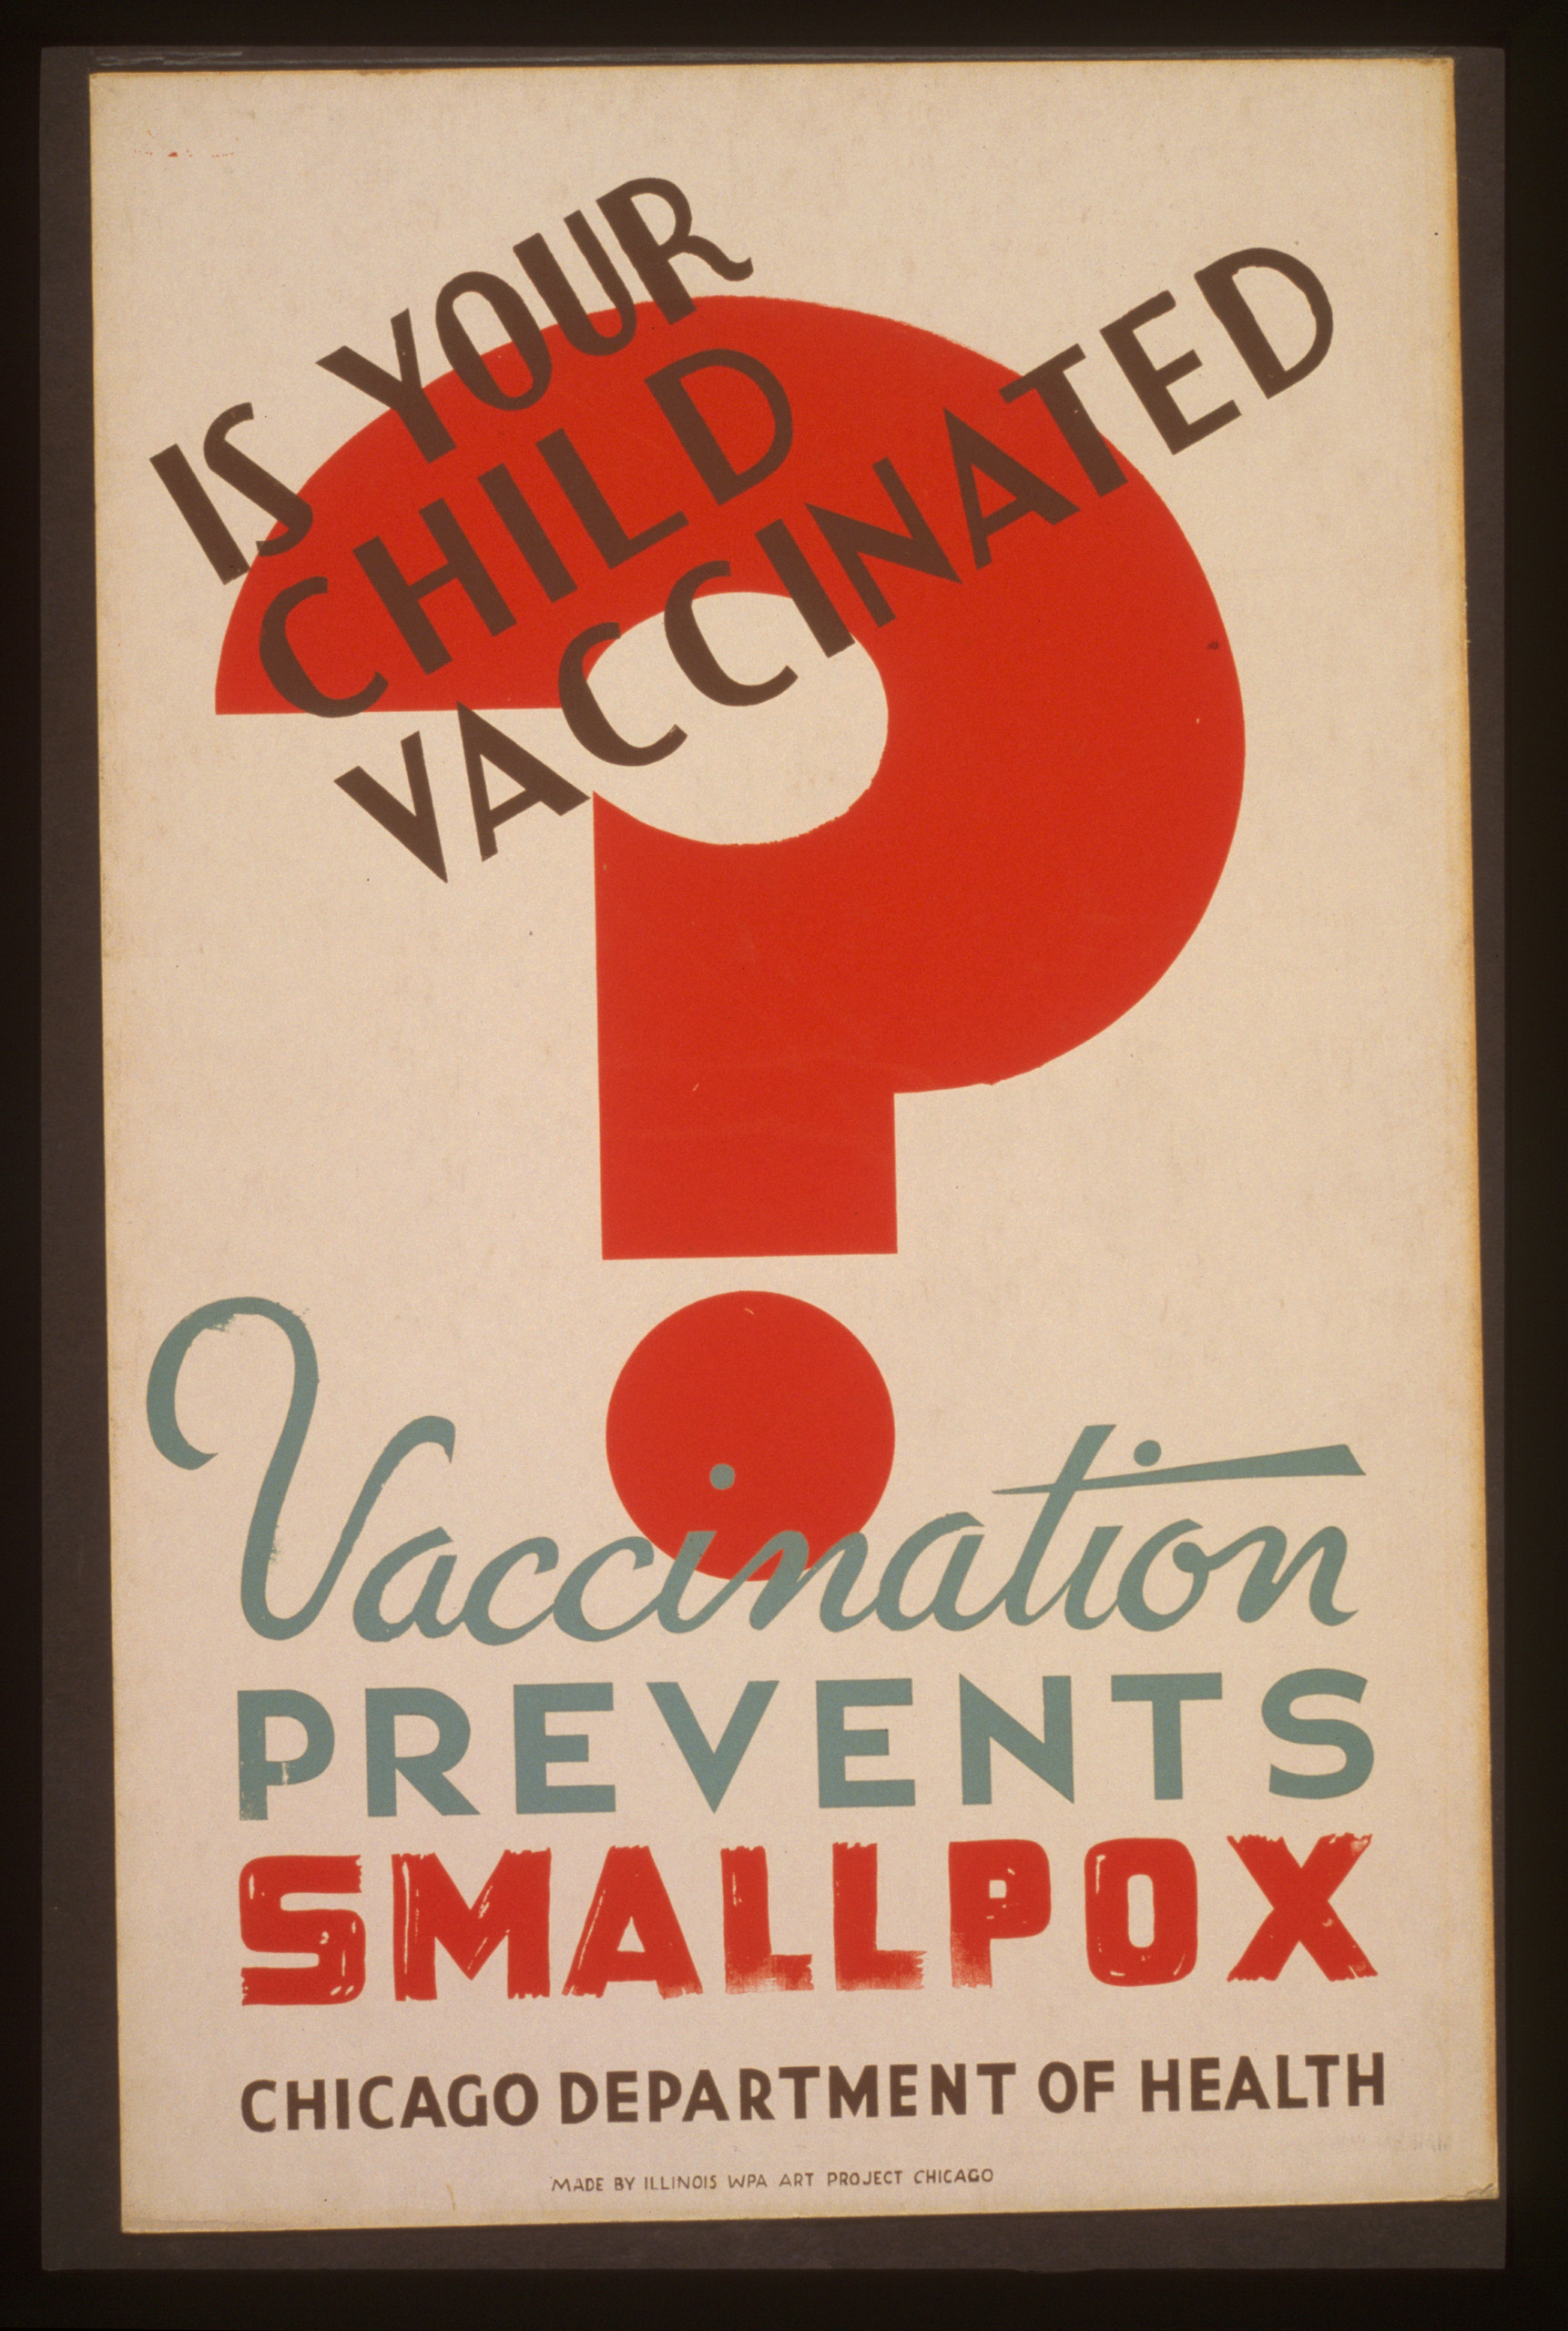 Poster for Chicago Department of Health showing large red question mark. Created between 1936 and 1941.